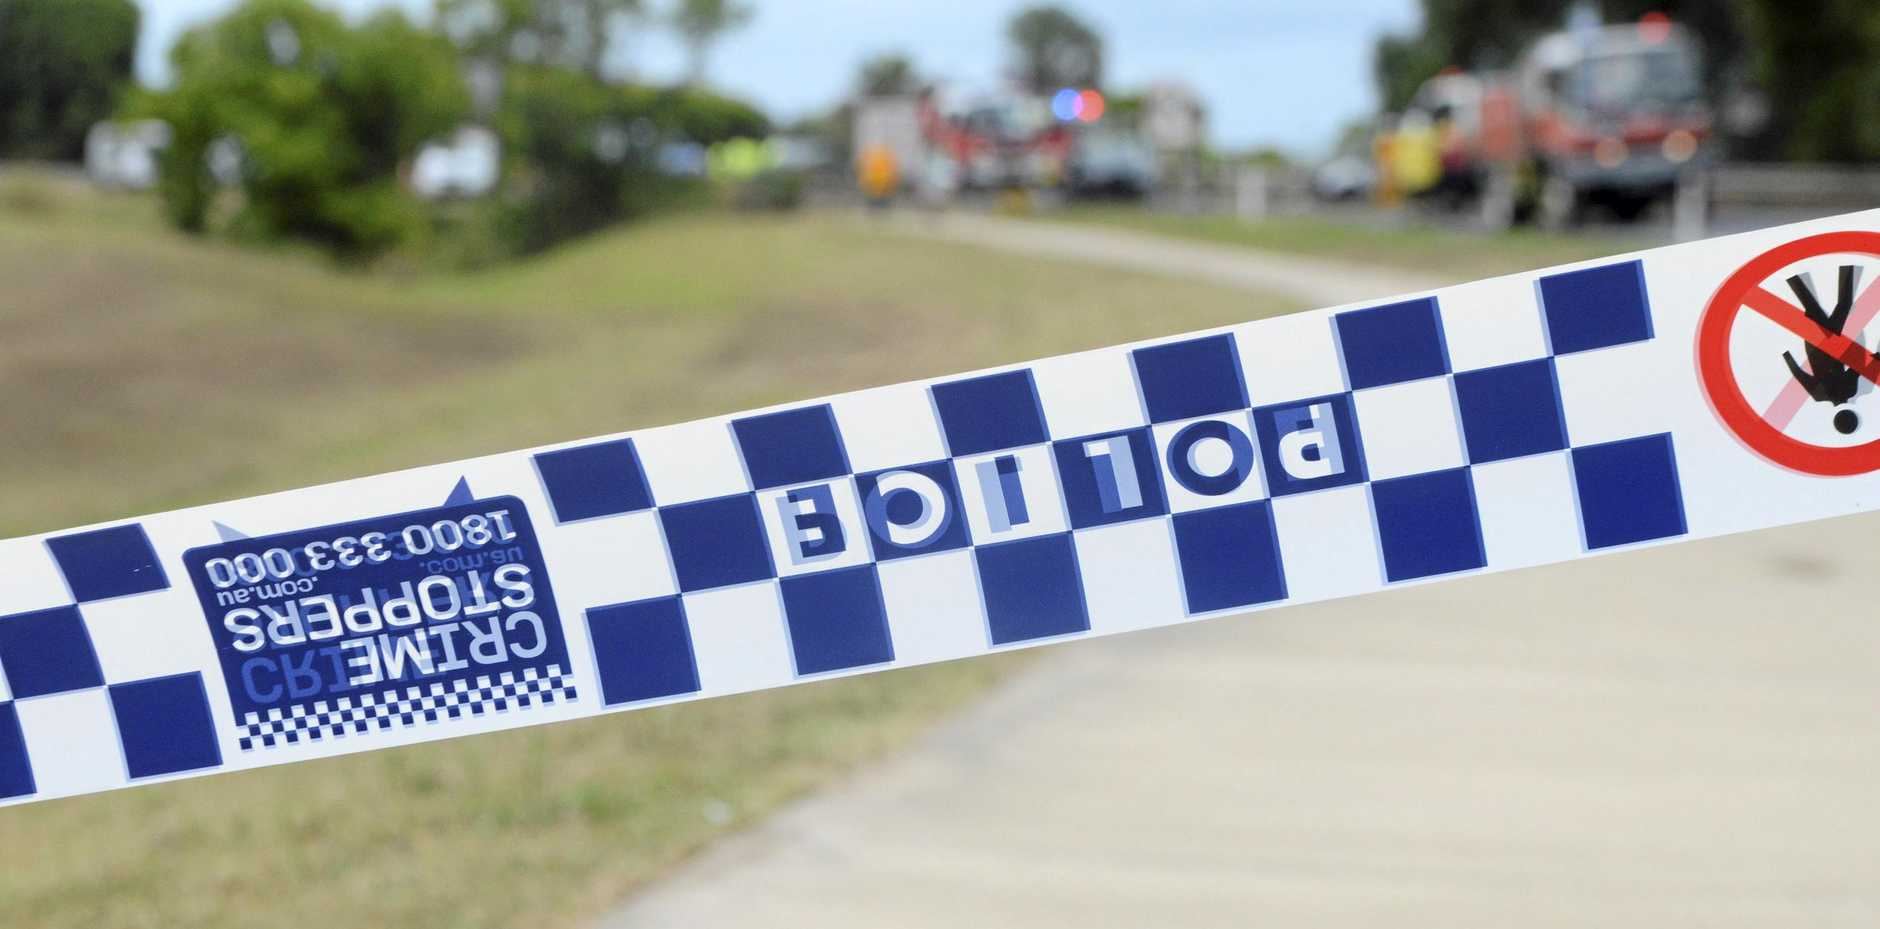 A man has been crushed by a hay bale at a rural work site.